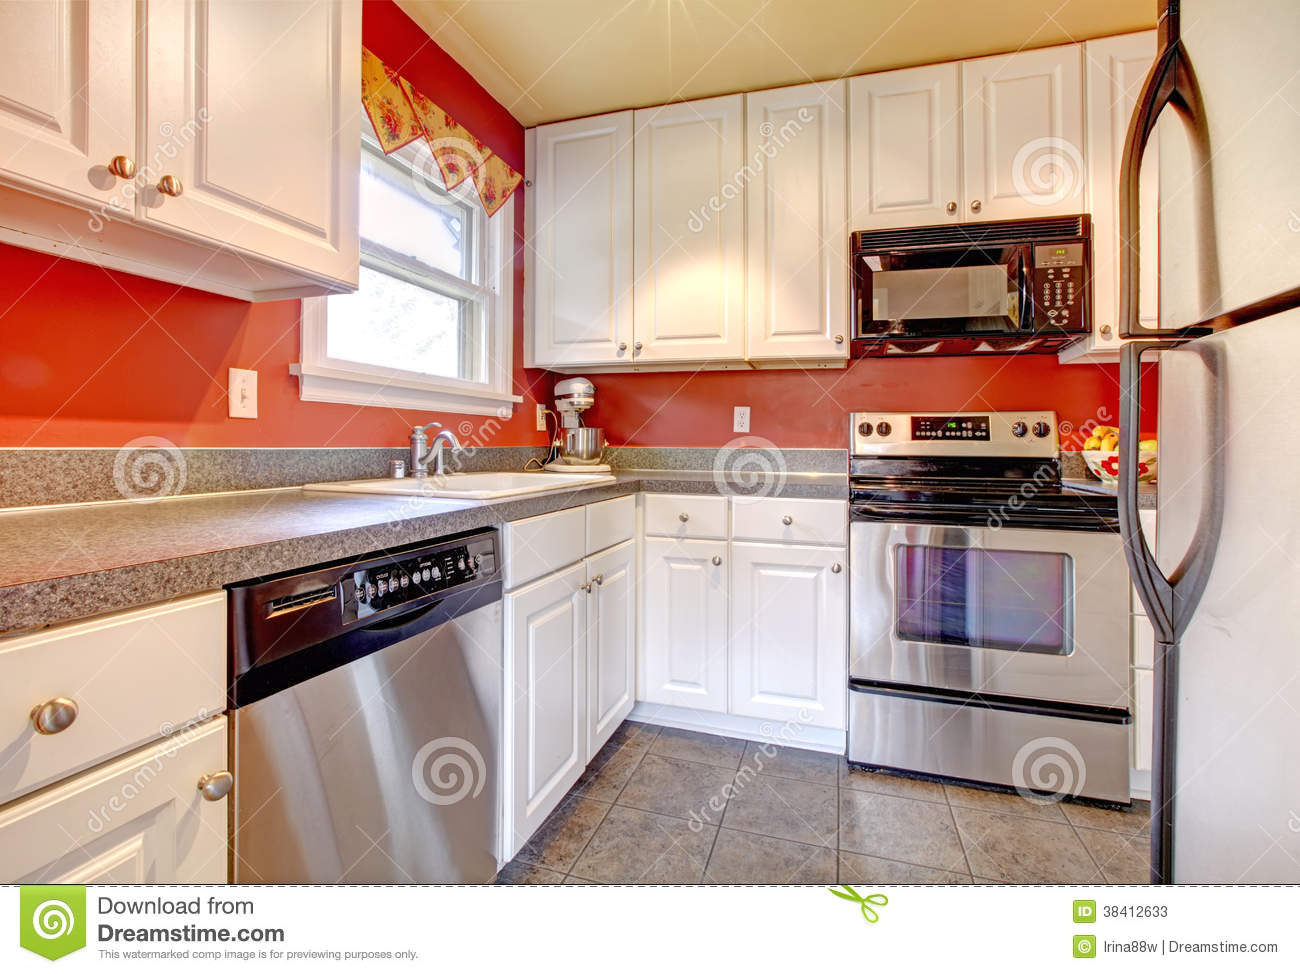 Cozy Kitchen Room With Red Wall And White Cabinets Stock Image Image Of Clean Steel 38412633